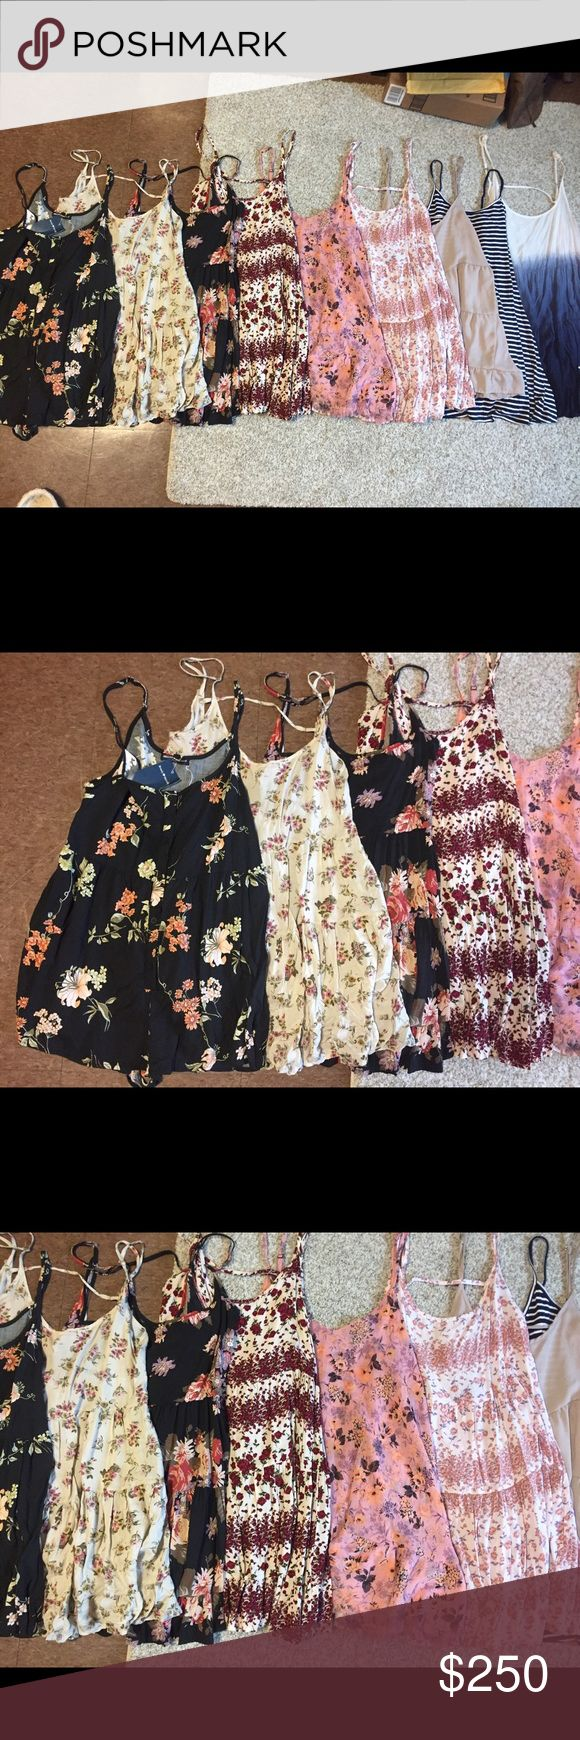 OFFERS: All for sale!! All are Brandy Melville, all are jada dresses except #1, #5, #8. The first is the only romper! All are for sale!! Looking for offers on all! Listed price is for all 9. Or $200 on (m)ercari Brandy Melville Dresses Mini